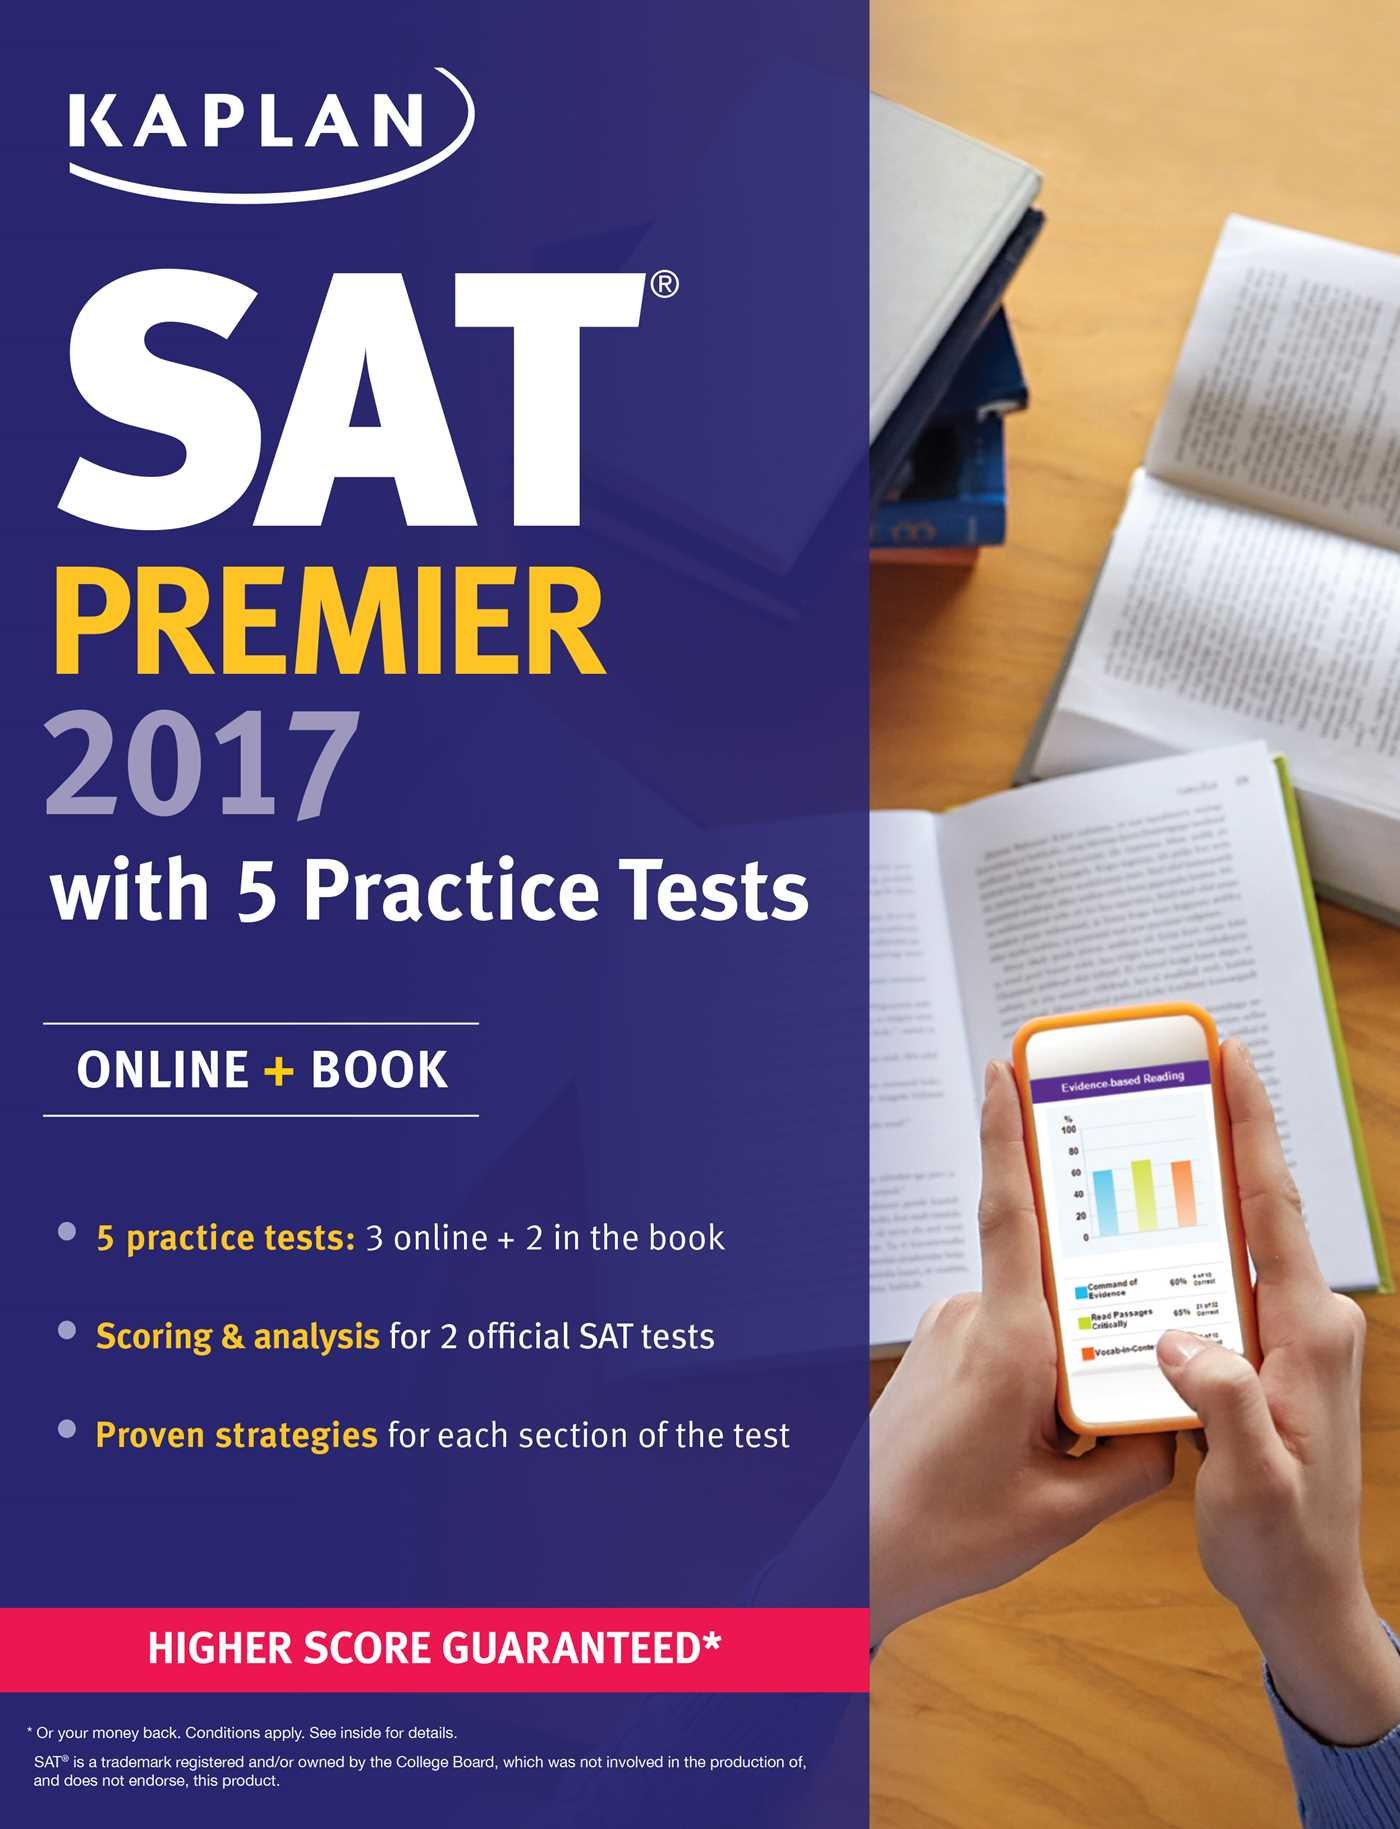 sat premier practice tests online book kaplan test sat premier 2017 5 practice tests online book kaplan test prep kaplan sat amazon co uk kaplan test prep 9781506202280 books